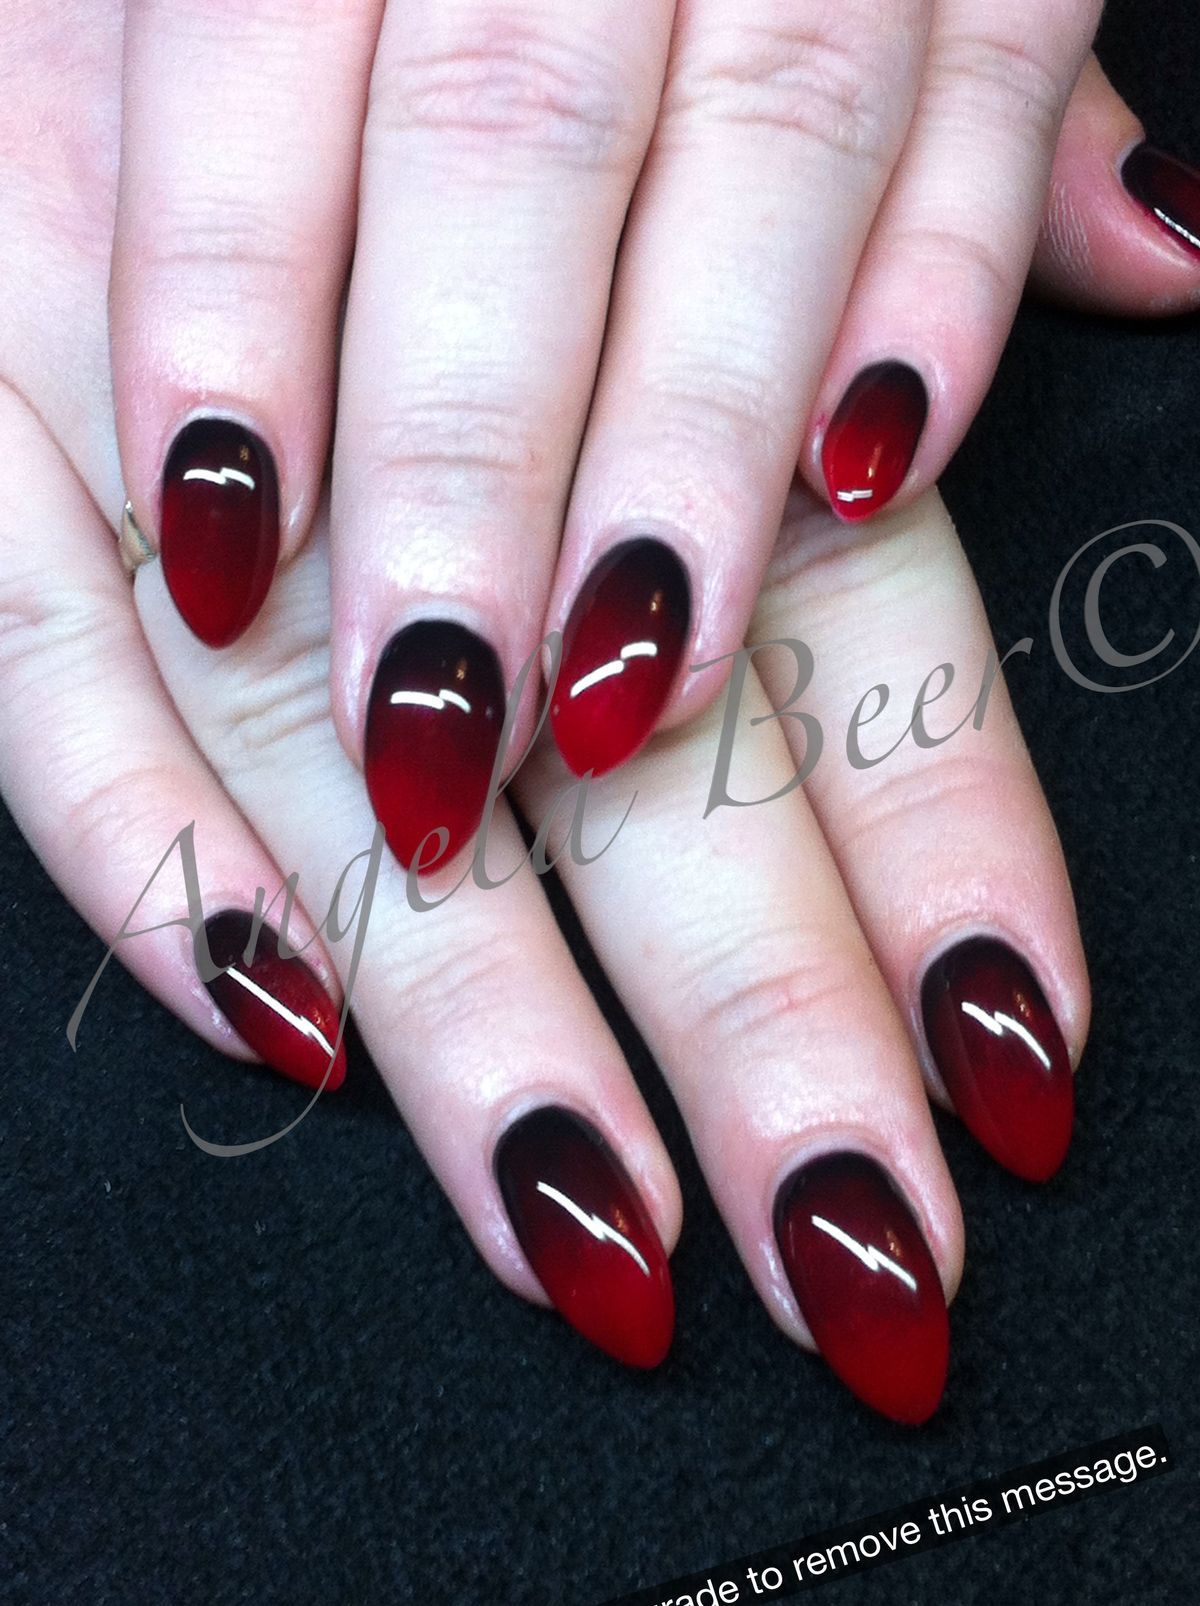 Pin By Kendall Martin On My Style Nails Halloween Nails Vampire